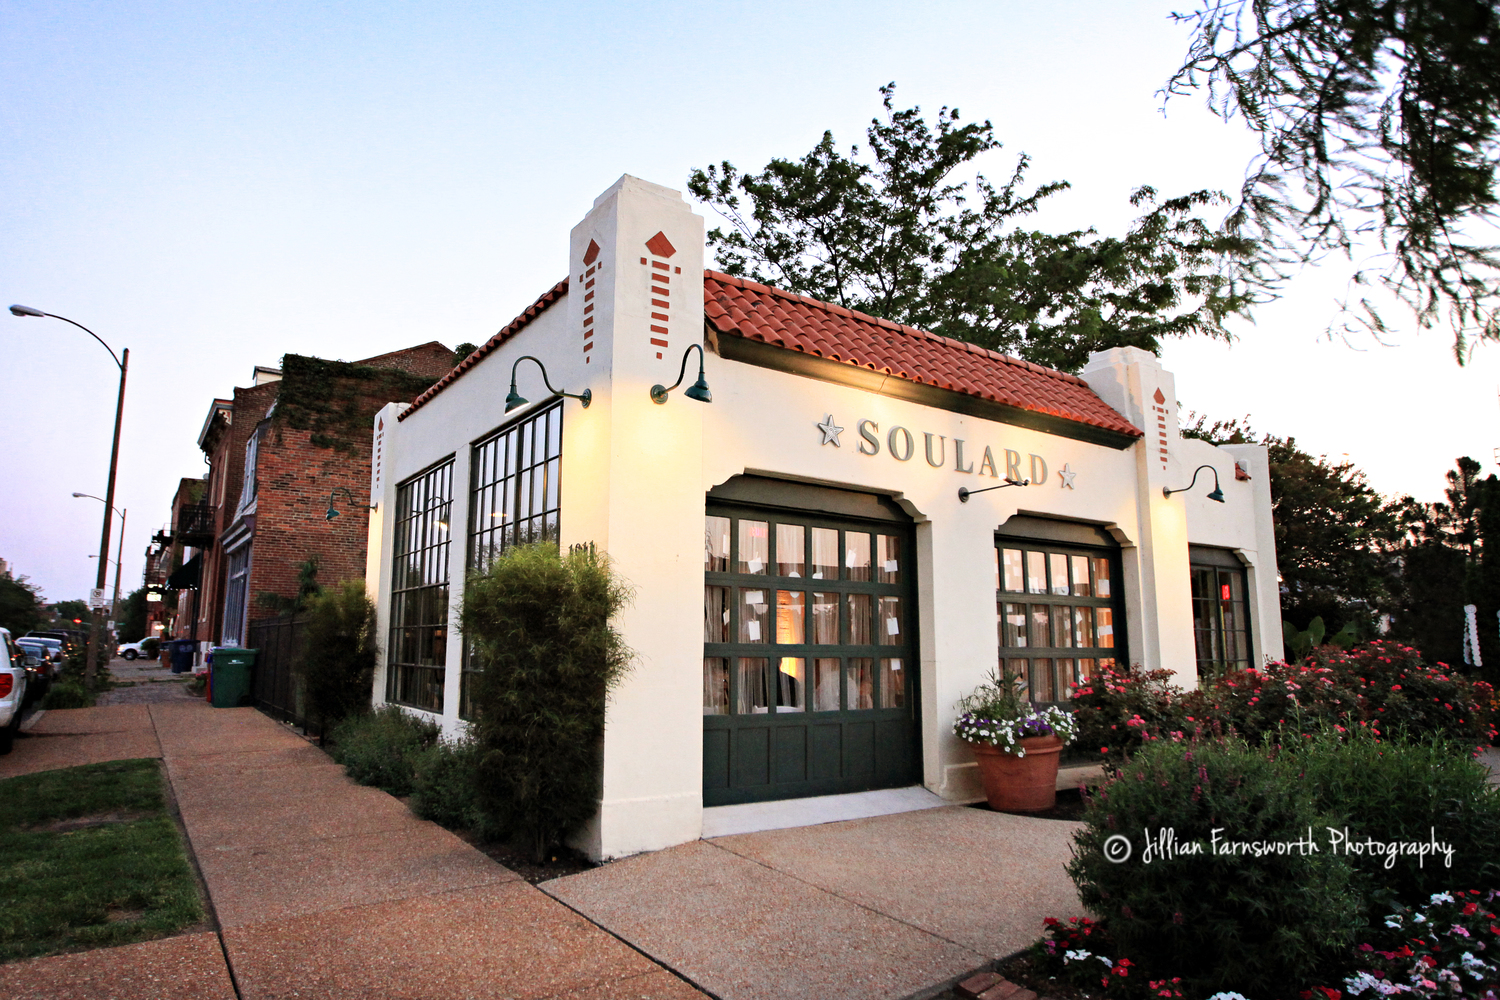 Another past grant was awarded for the renovation ofSoulard Station, which marks the entrance into the Soulard neighborhood.  Copyright: Jillian Farnsworth